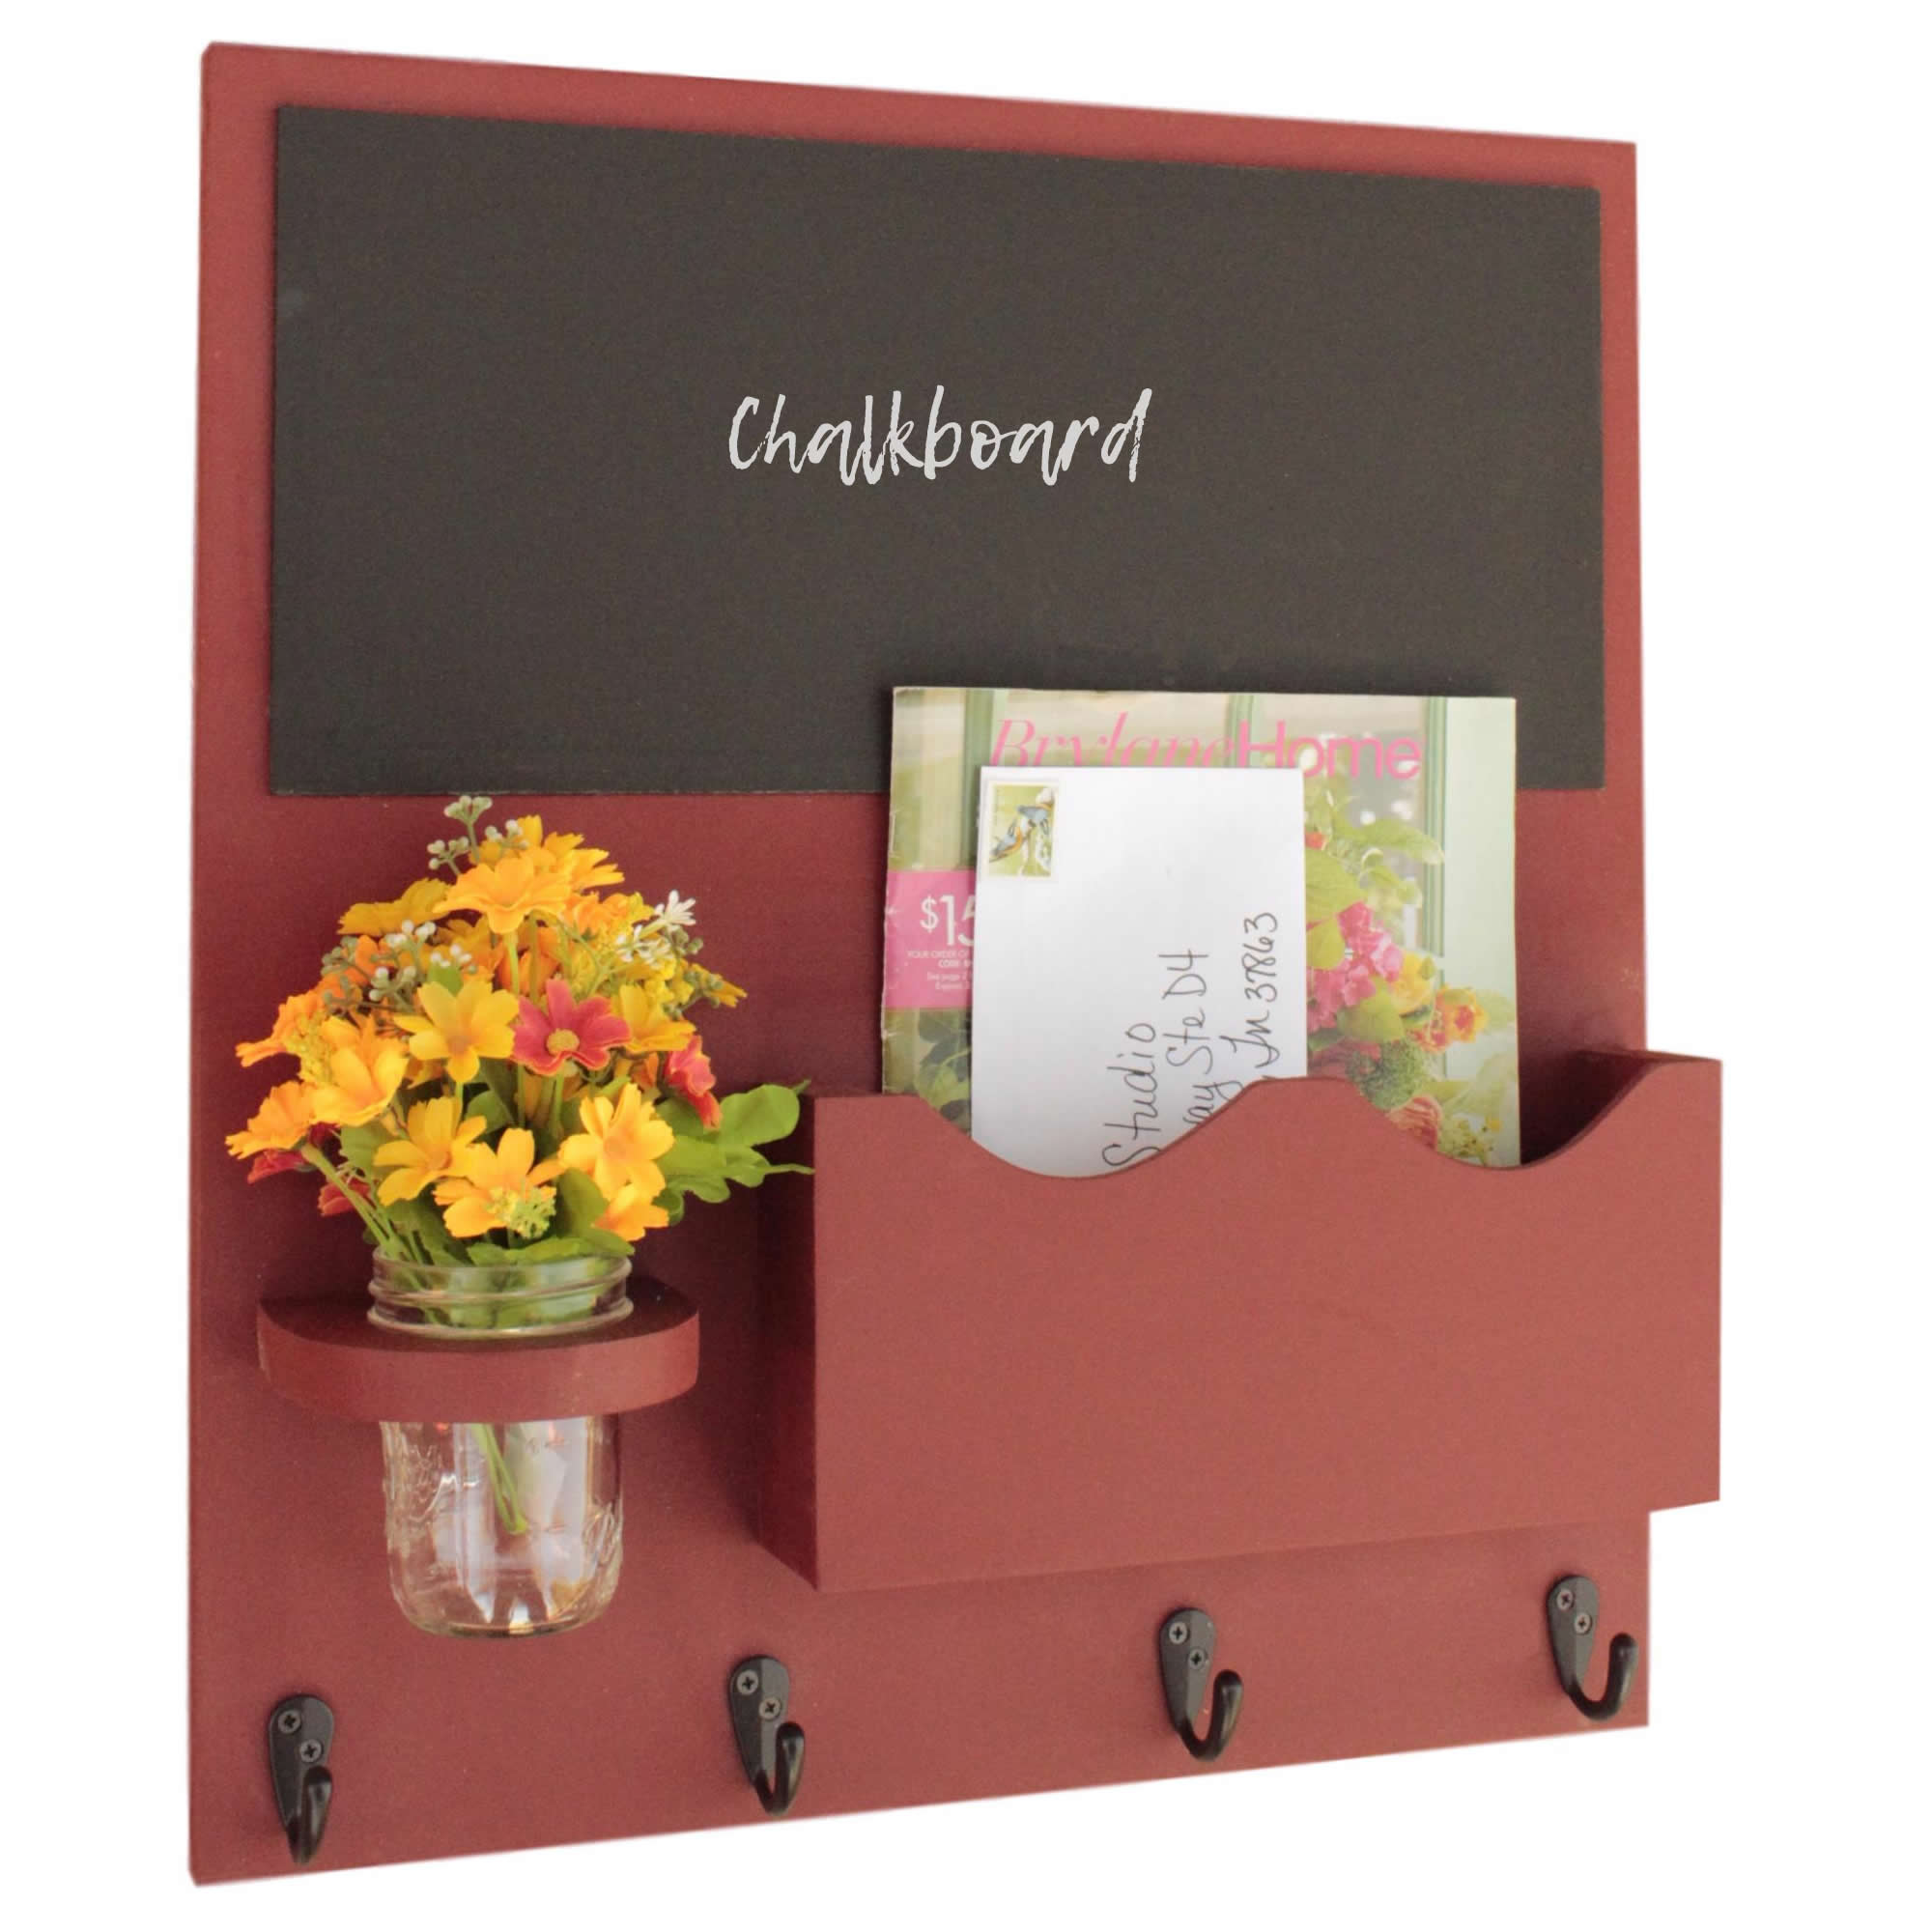 Mail Organizer with Chalkboard, One Large Magazine / Mail Slot, Key Hooks & Mason Jar